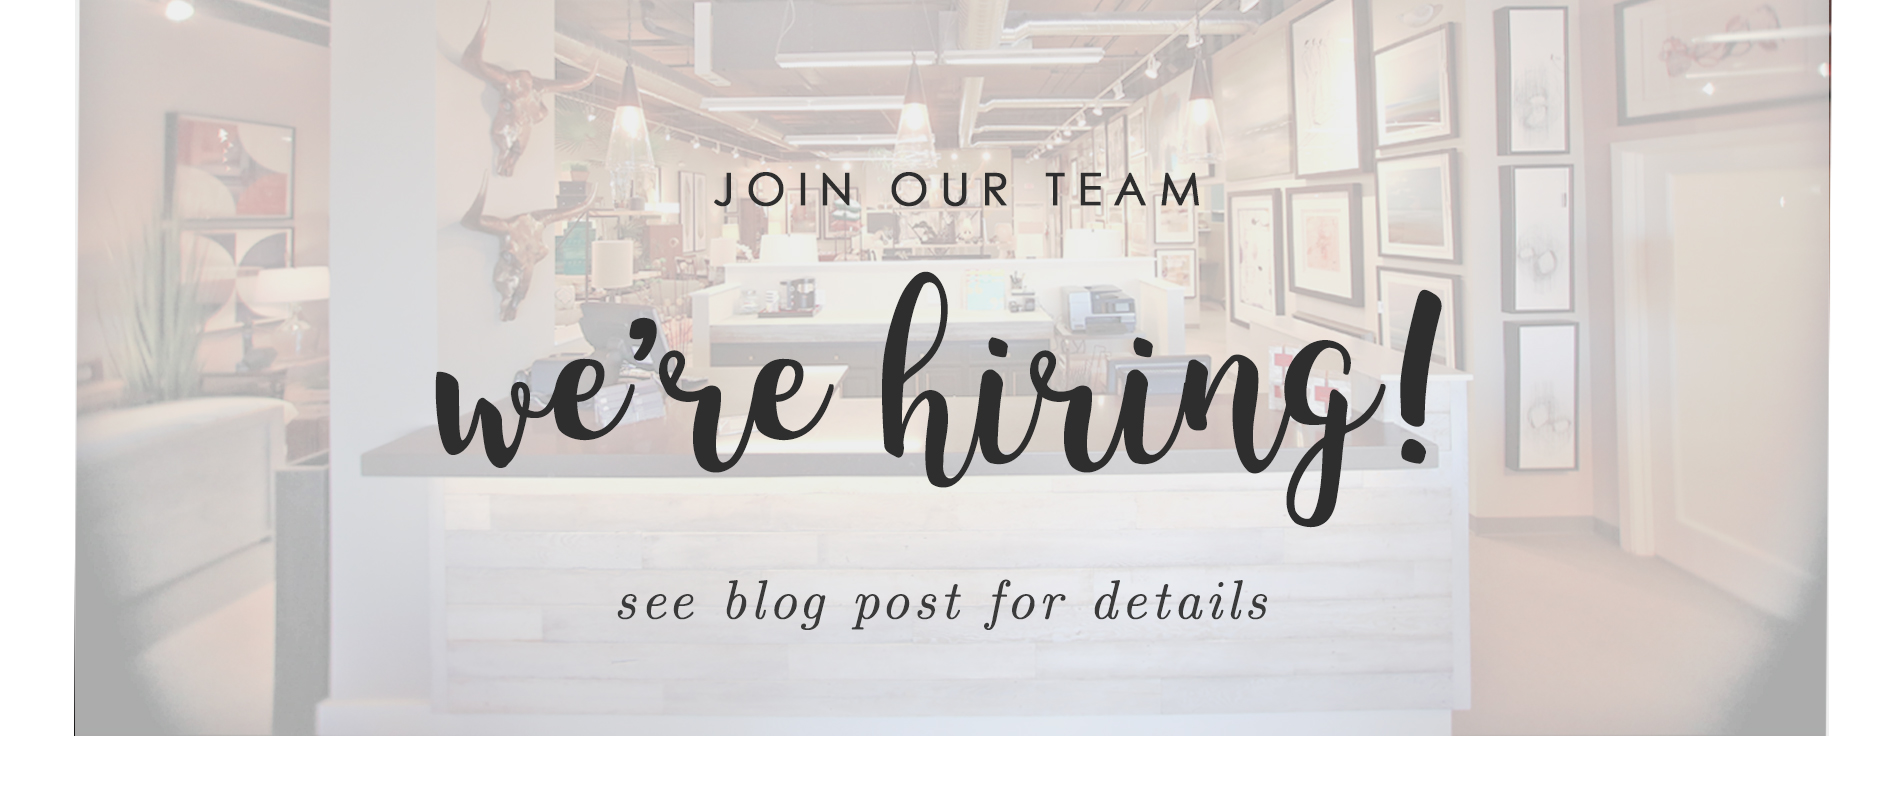 we're hiring - looking for enthusiastic retail sales associate to join team